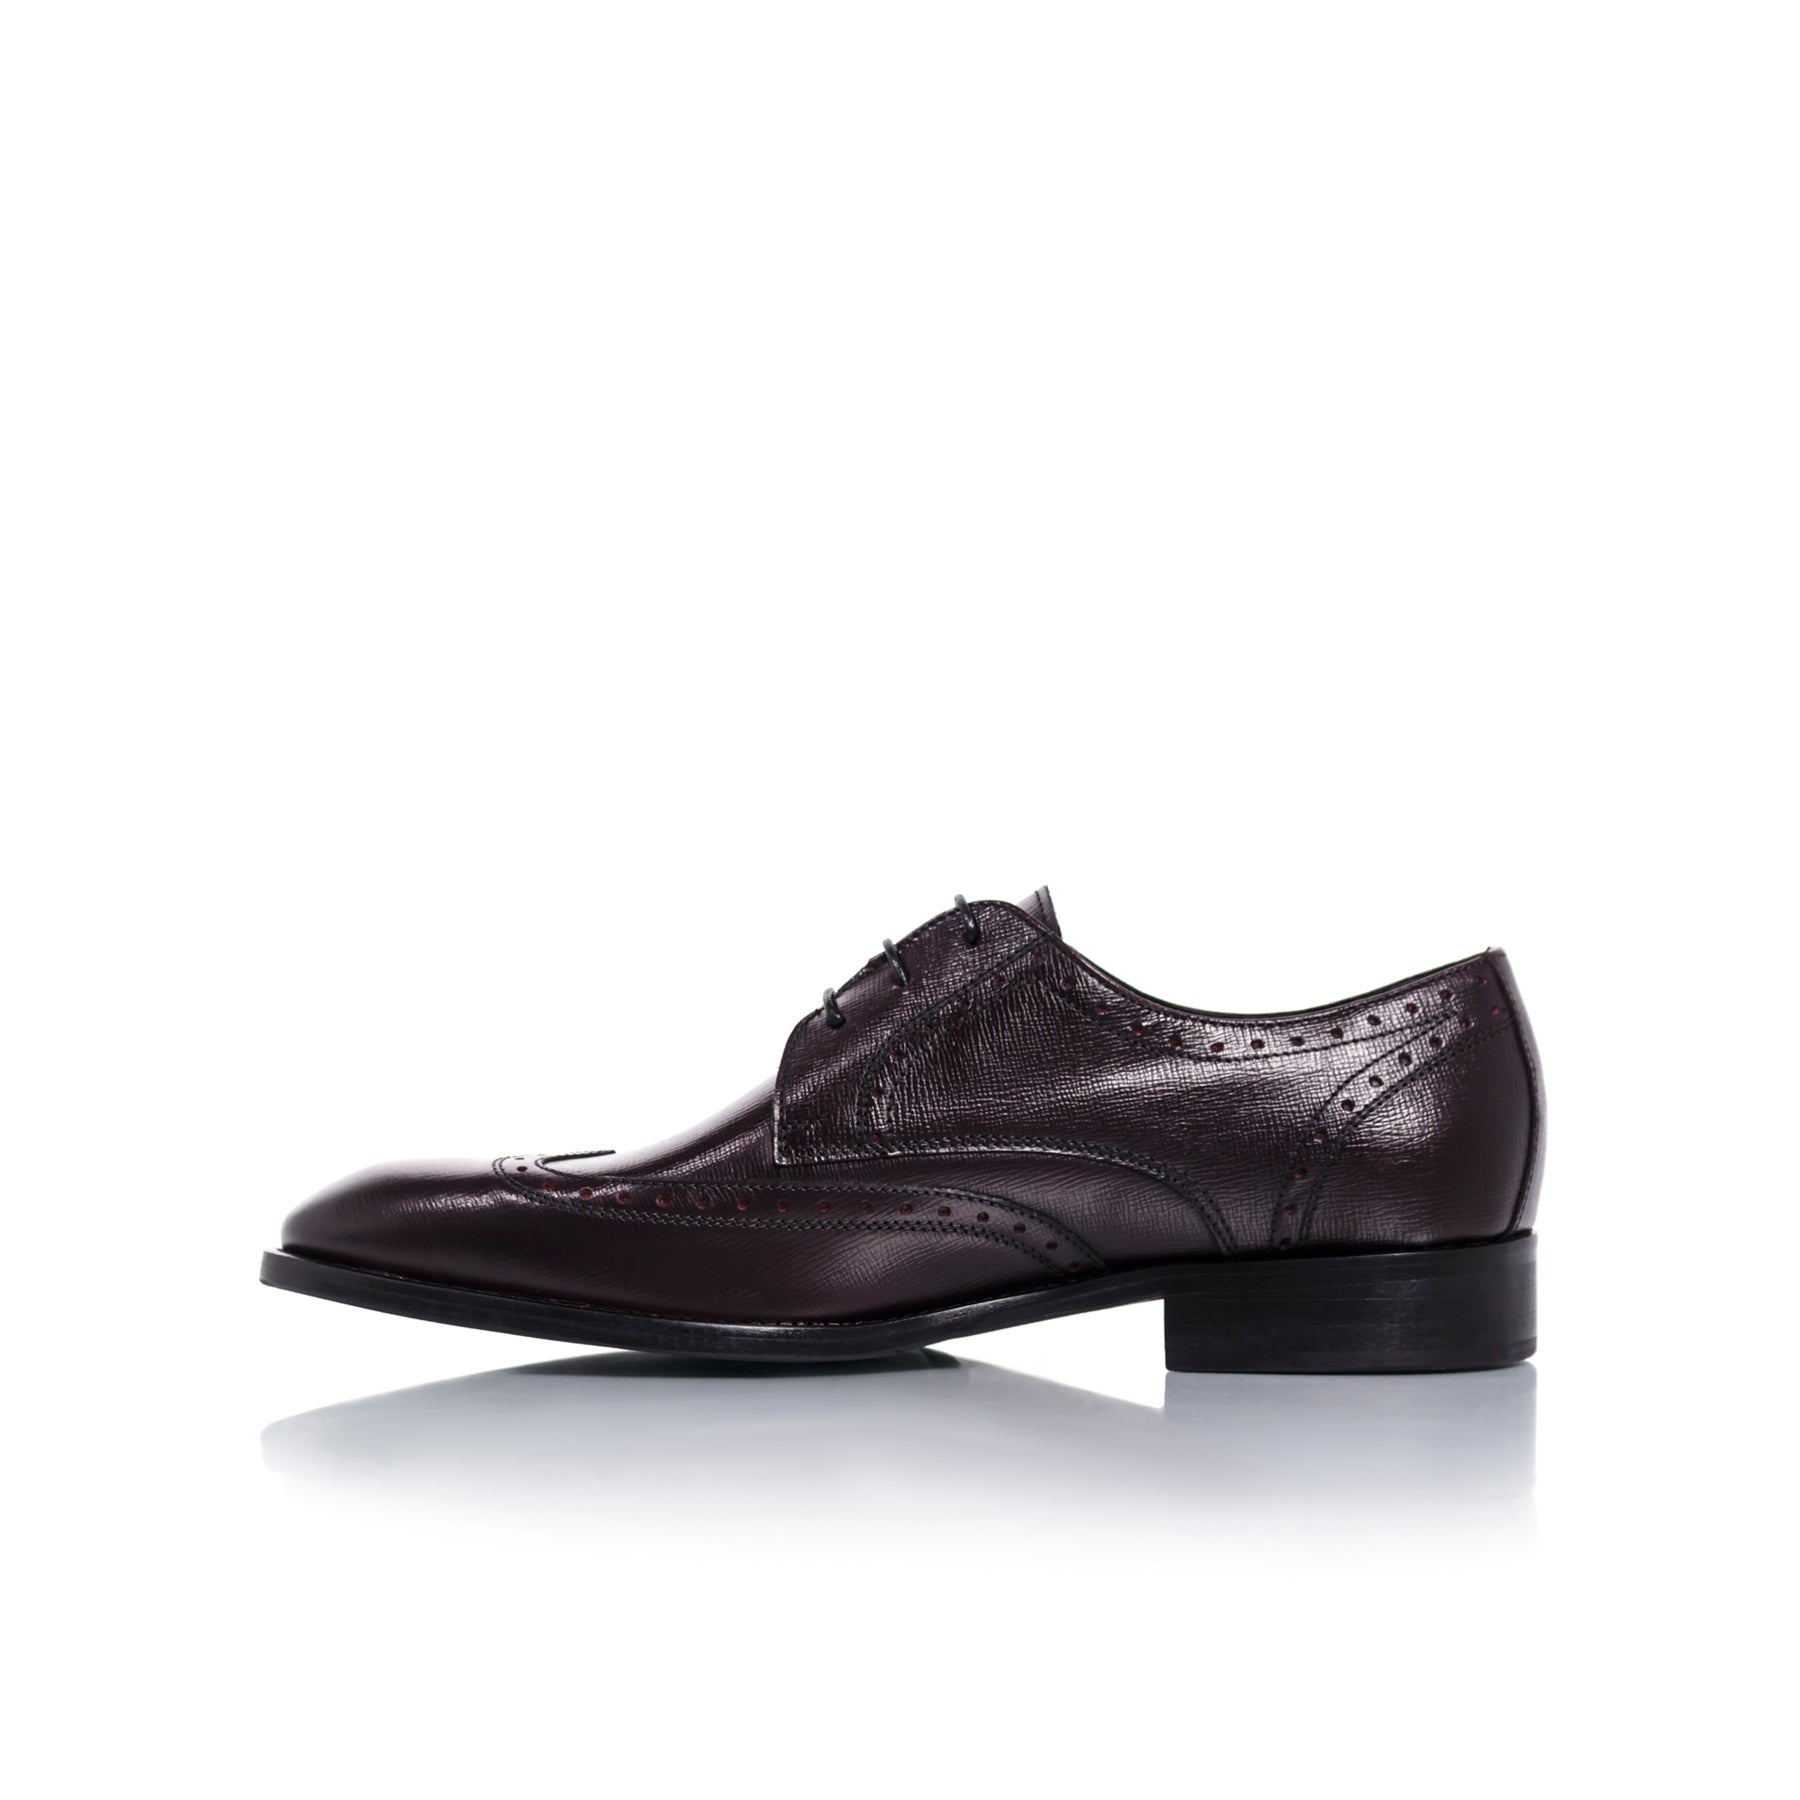 Nicholas Bordo Leather Shoes